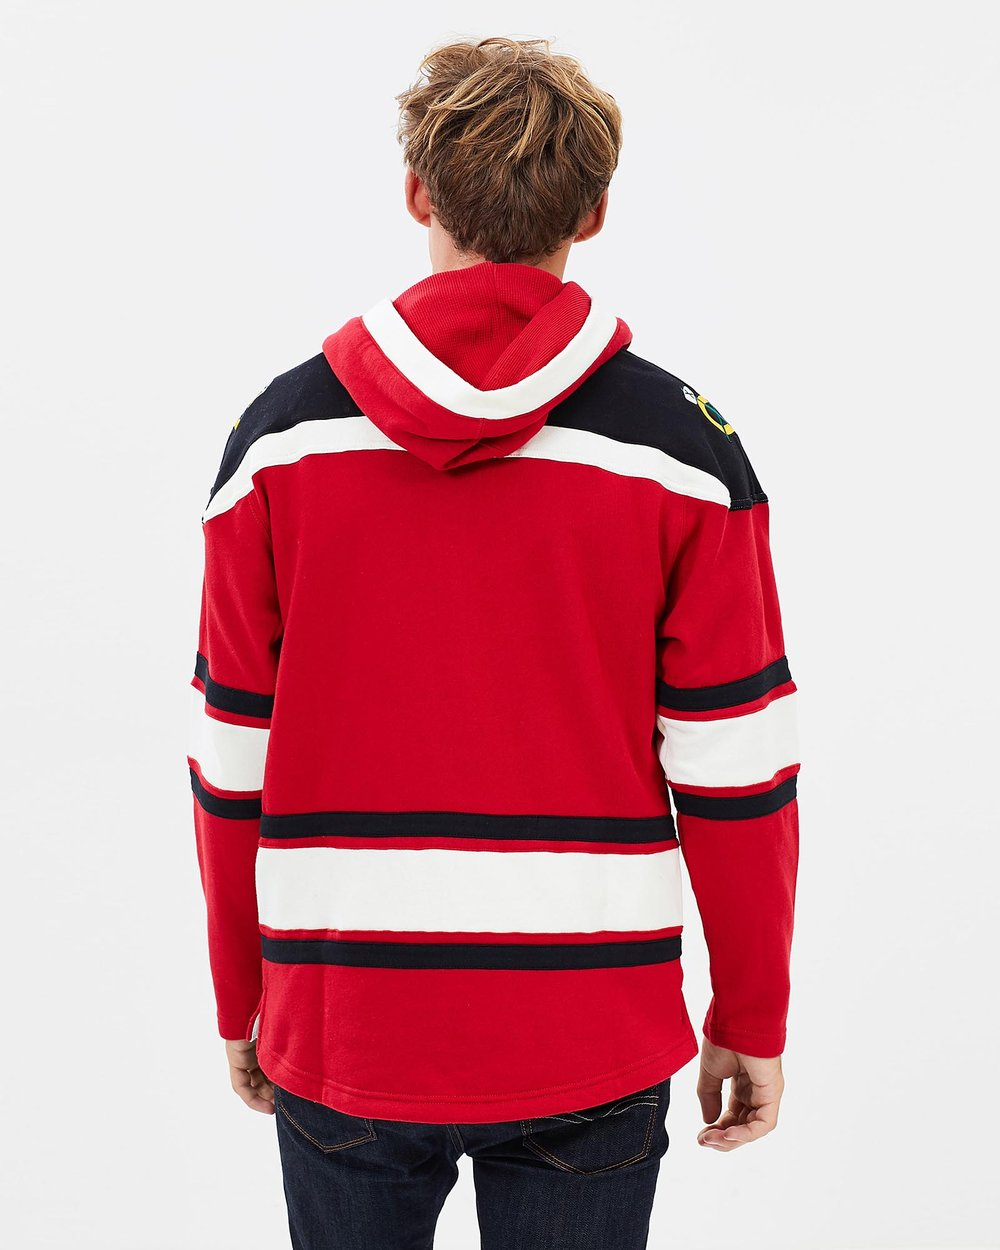 4e52089e7 Chicago Blackhawks Superior 47 Lacer Hoodie by 47 Online | THE ICONIC |  Australia